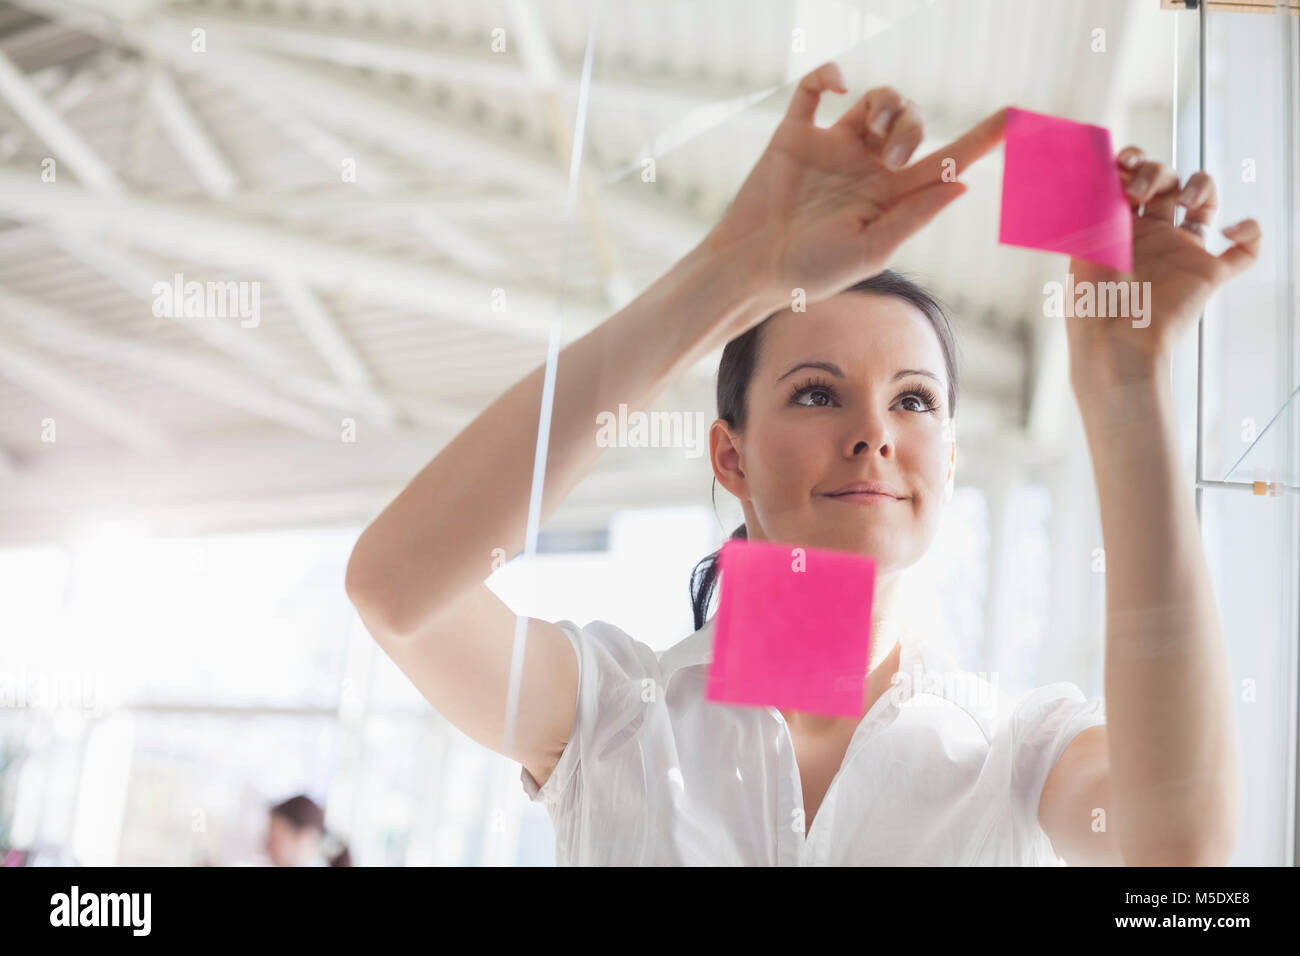 Beautiful young businesswoman putting sticky notes on glass wall in office - Stock Image